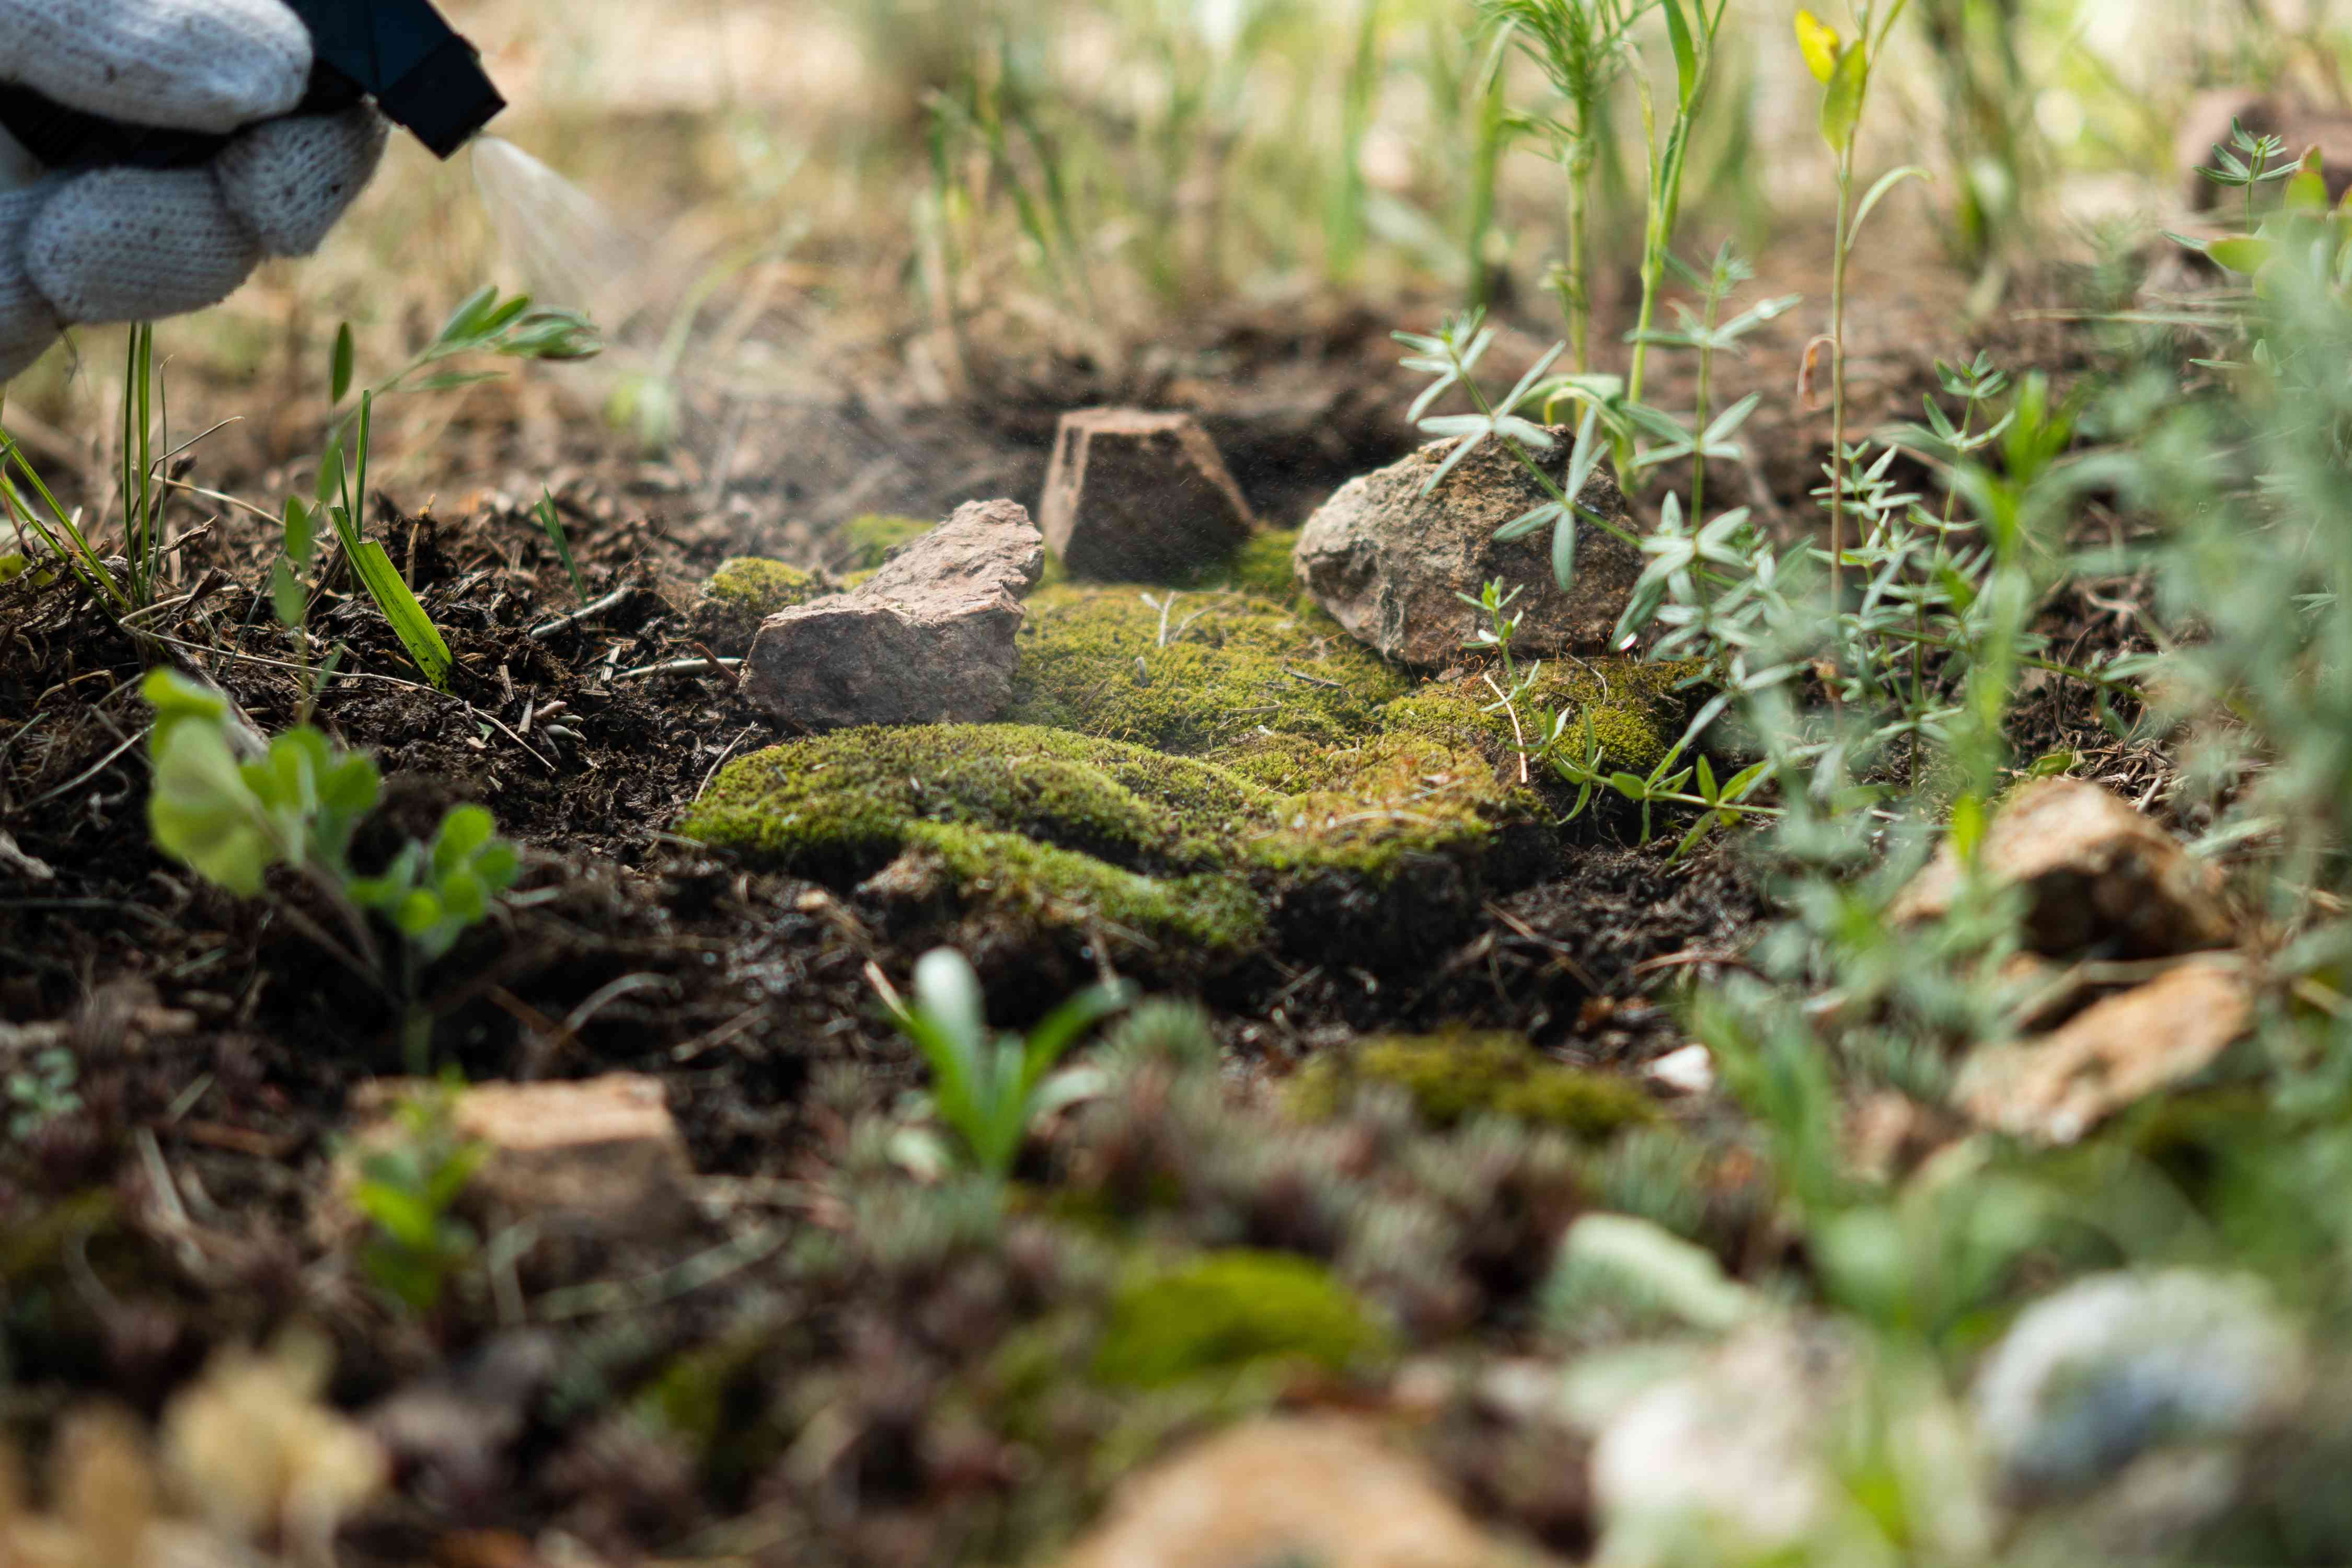 Transplanted moss being sprayed with water bottle to be kept moist